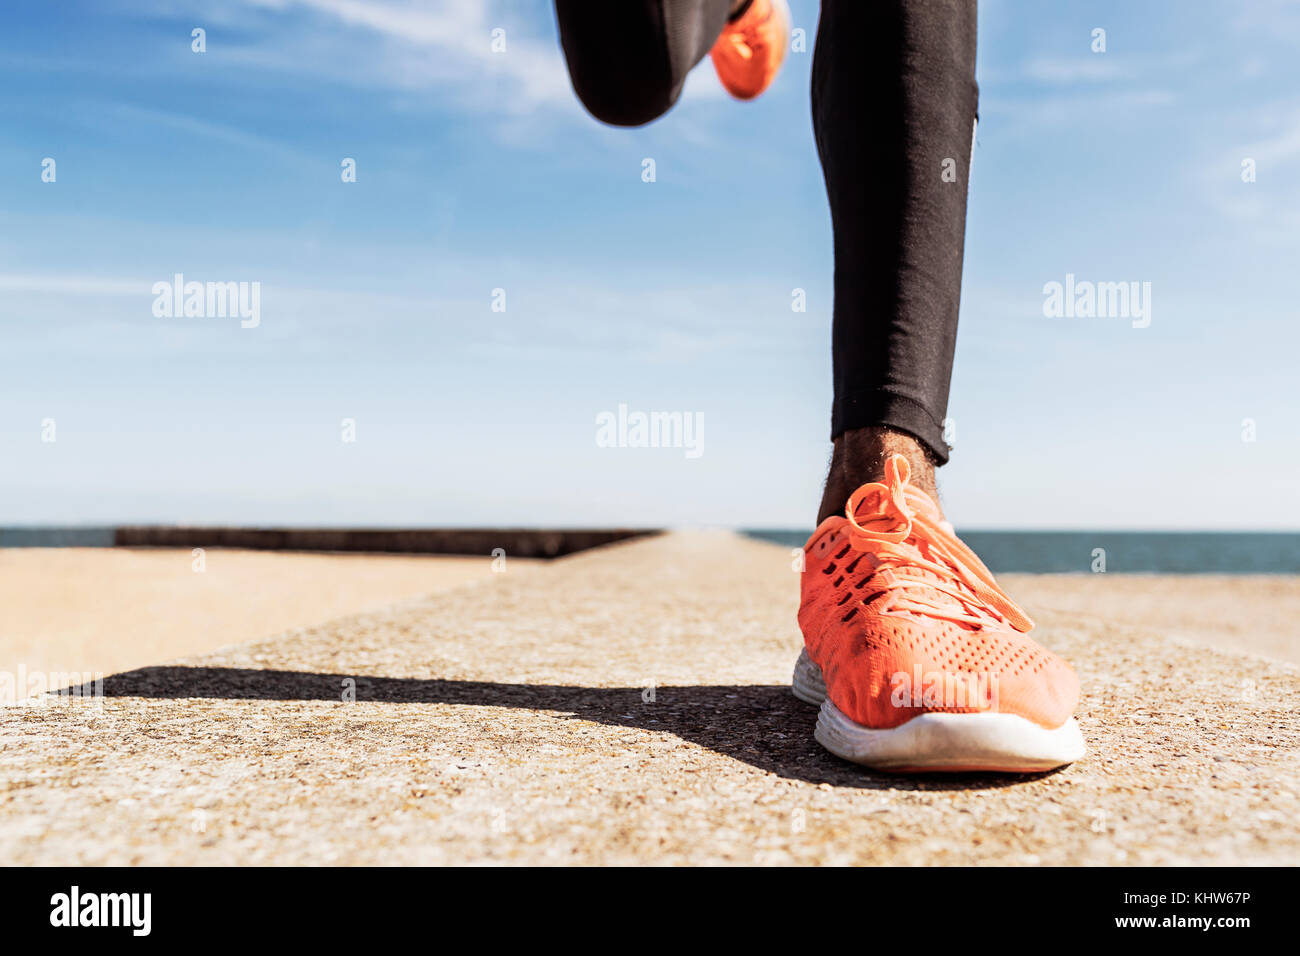 Man running outdoors, low section - Stock Image